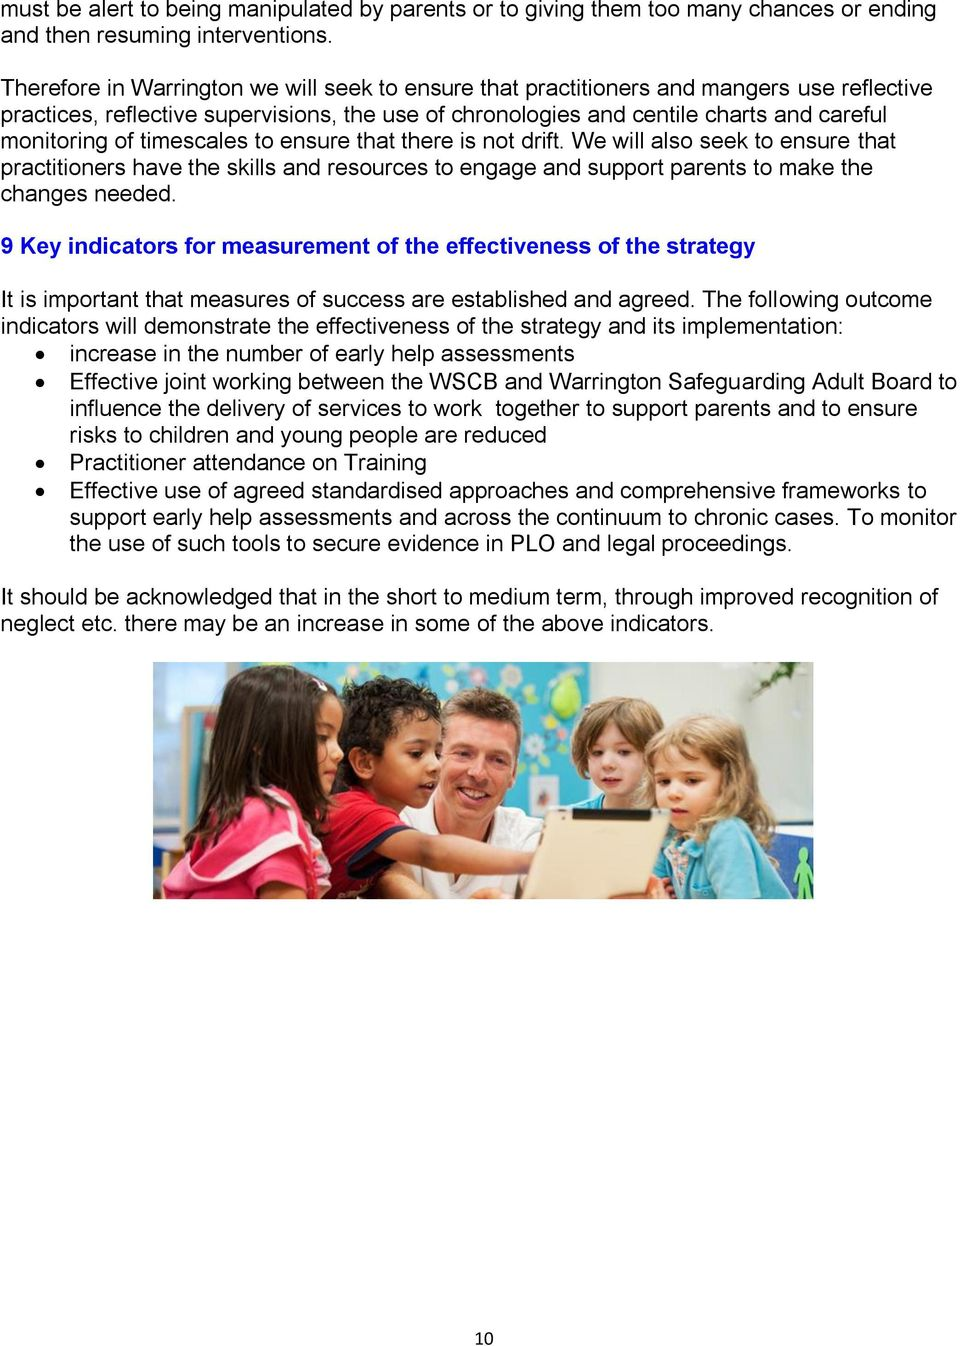 timescales to ensure that there is not drift. We will also seek to ensure that practitioners have the skills and resources to engage and support parents to make the changes needed.